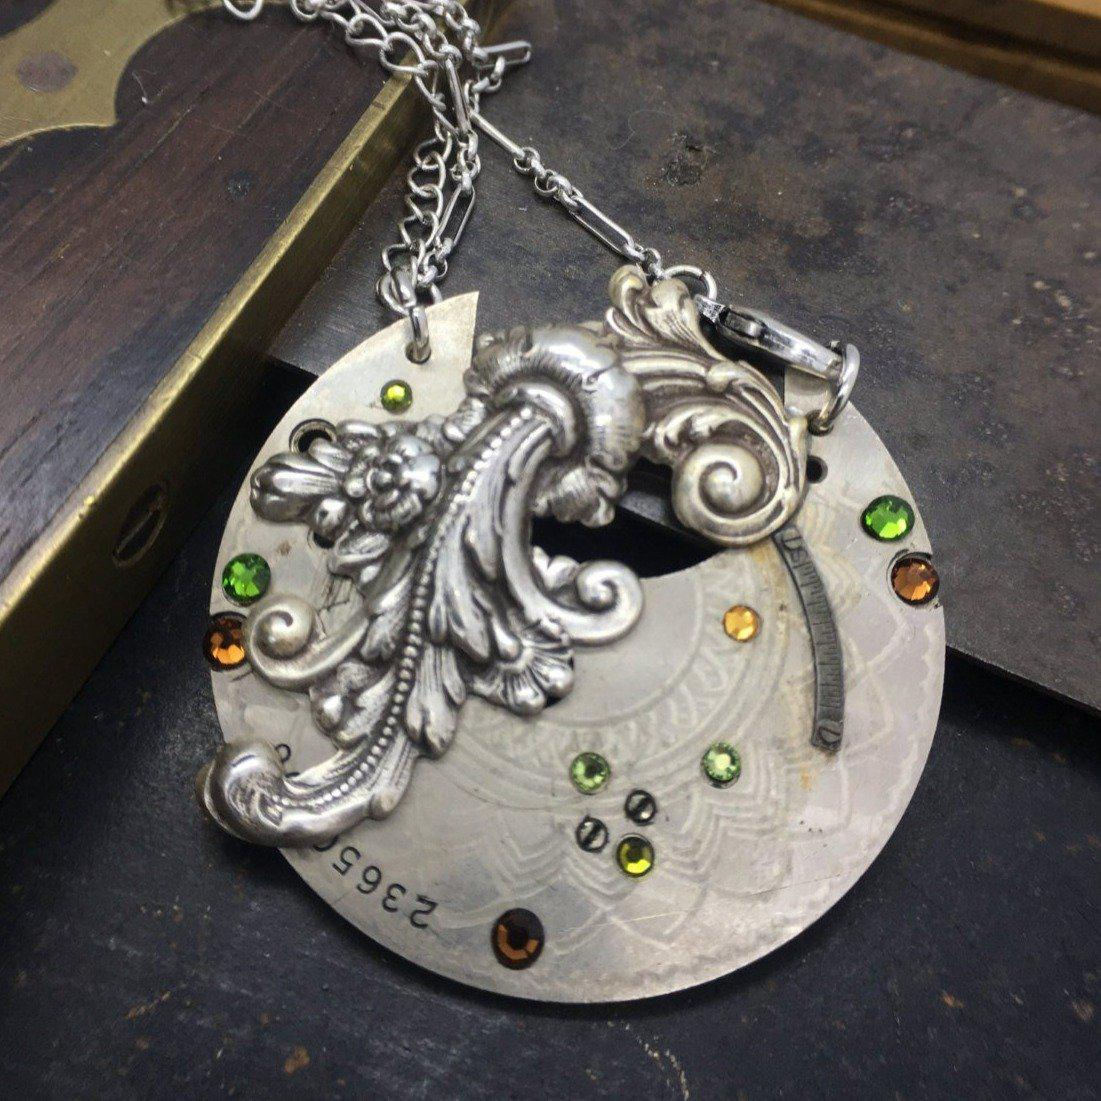 Ramona, Engraved Pocket Watch Necklace - The Victorian Magpie